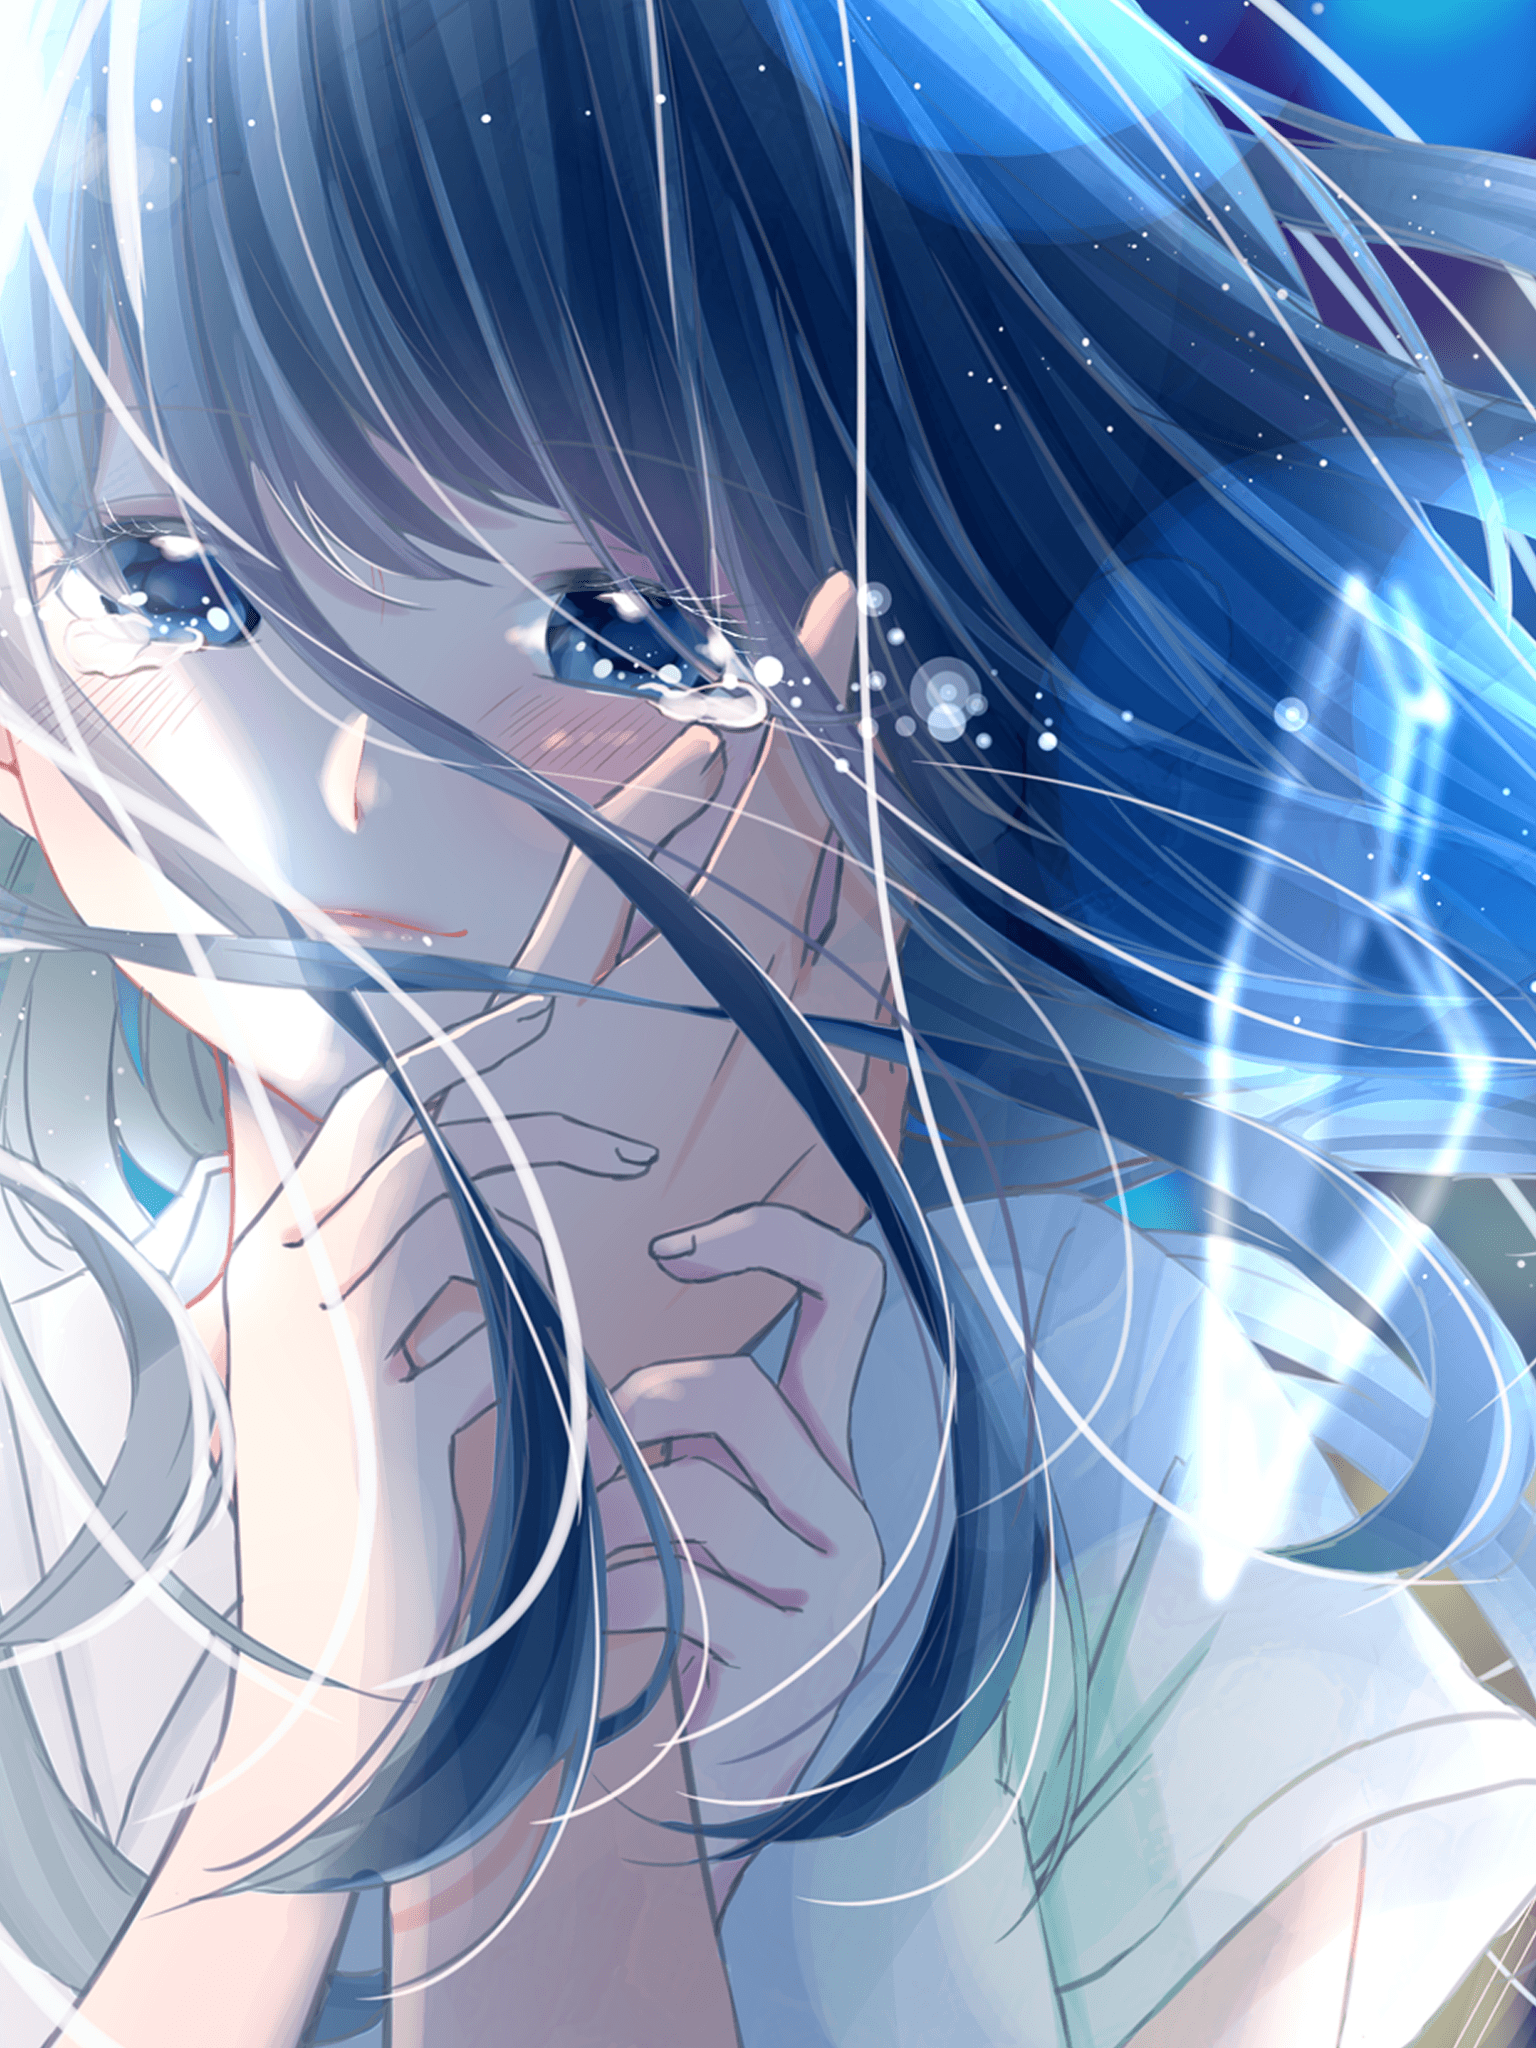 Crying Anime Girl Wallpapers - Wallpaper Cave